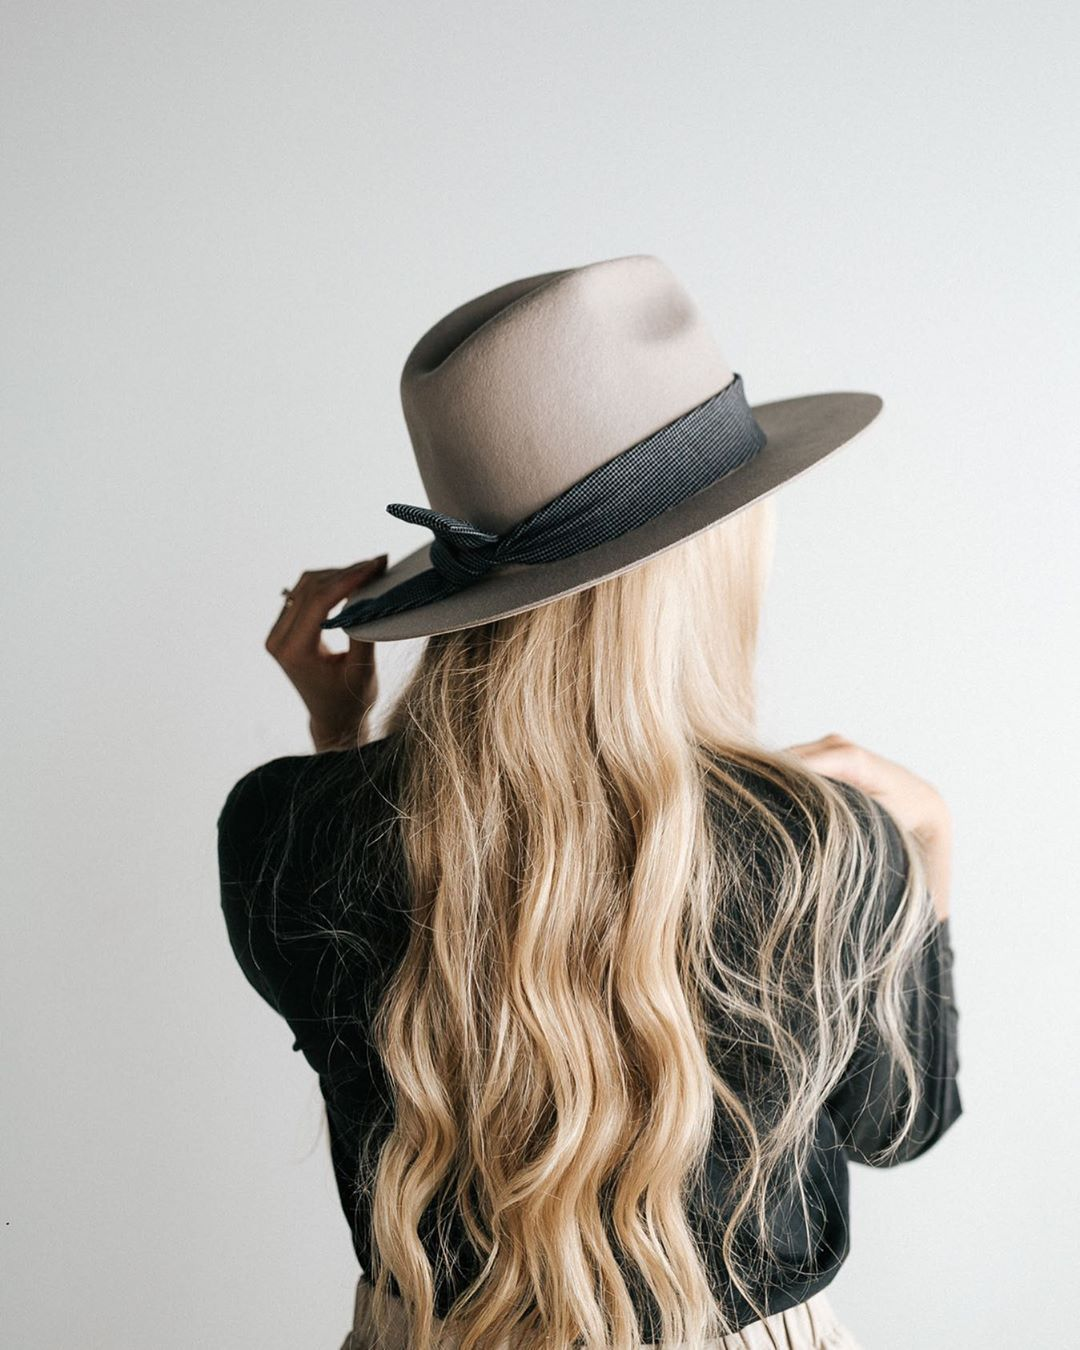 Gigi Pip Hats On Instagram Change Your Band Change Your Mood Limited Edition Removable Hat Bands In Stock No Boho Chic Hats Hat Bands Bohemian Style Hats